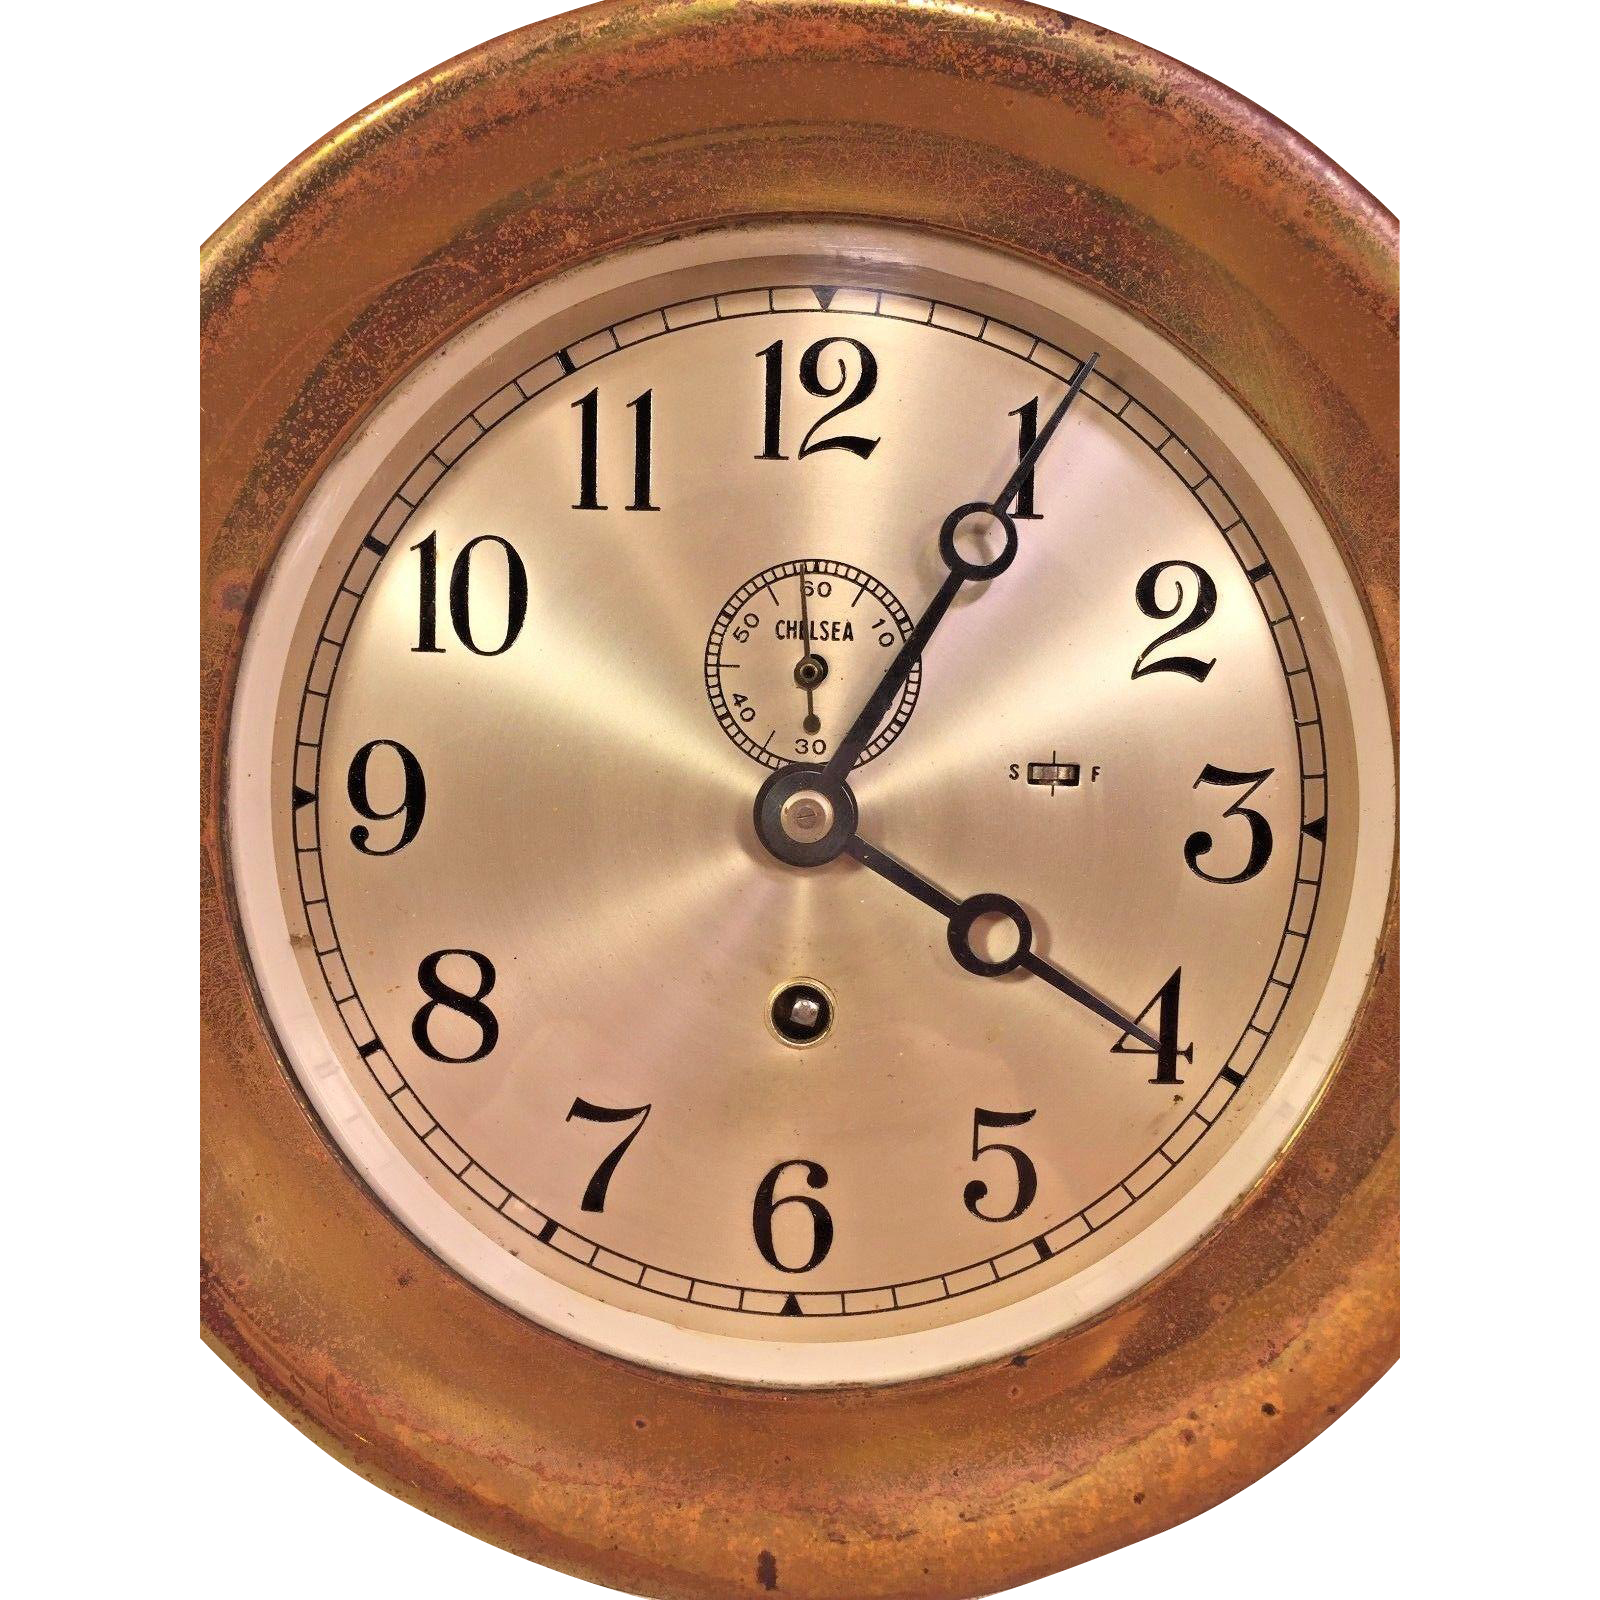 Vintage chelsea ships clock time only runs 1947 1948 725 brass vintage chelsea ships clock time only runs 1947 1948 725 brass case amipublicfo Image collections